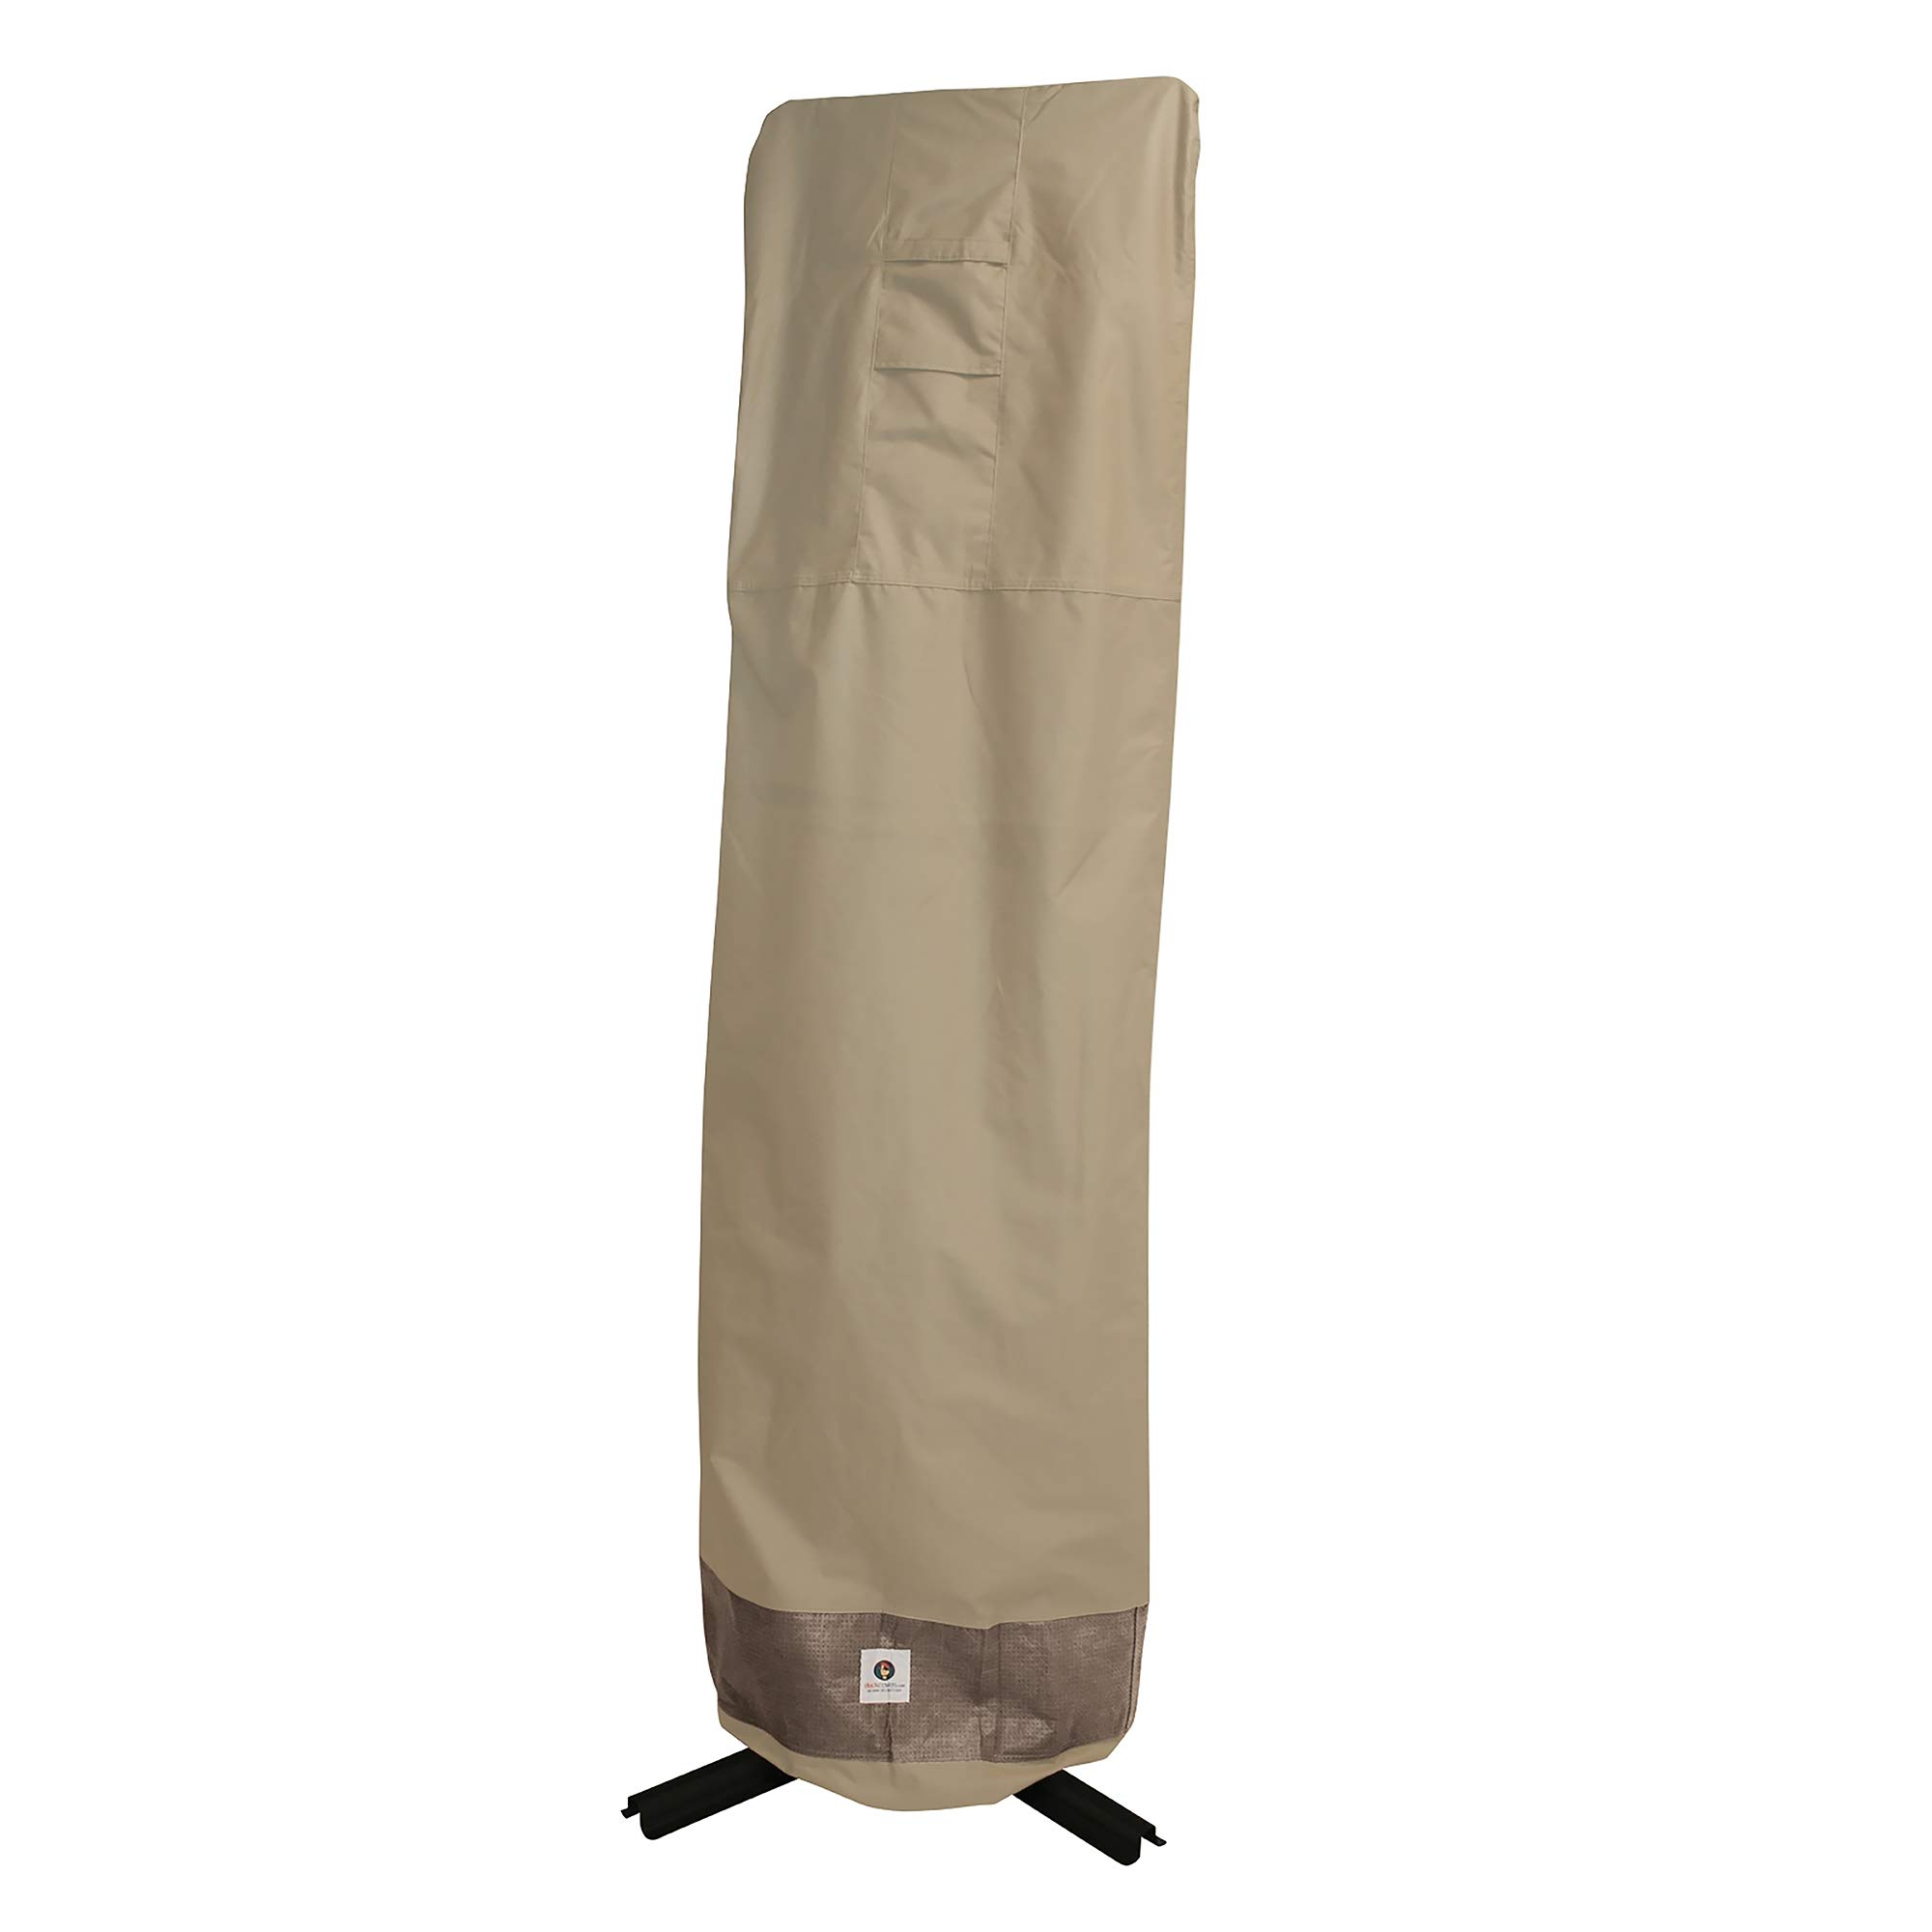 Duck Covers Elegant Offset Patio Umbrella Cover with Installation Pole, 101-Inch by Duck Covers (Image #9)